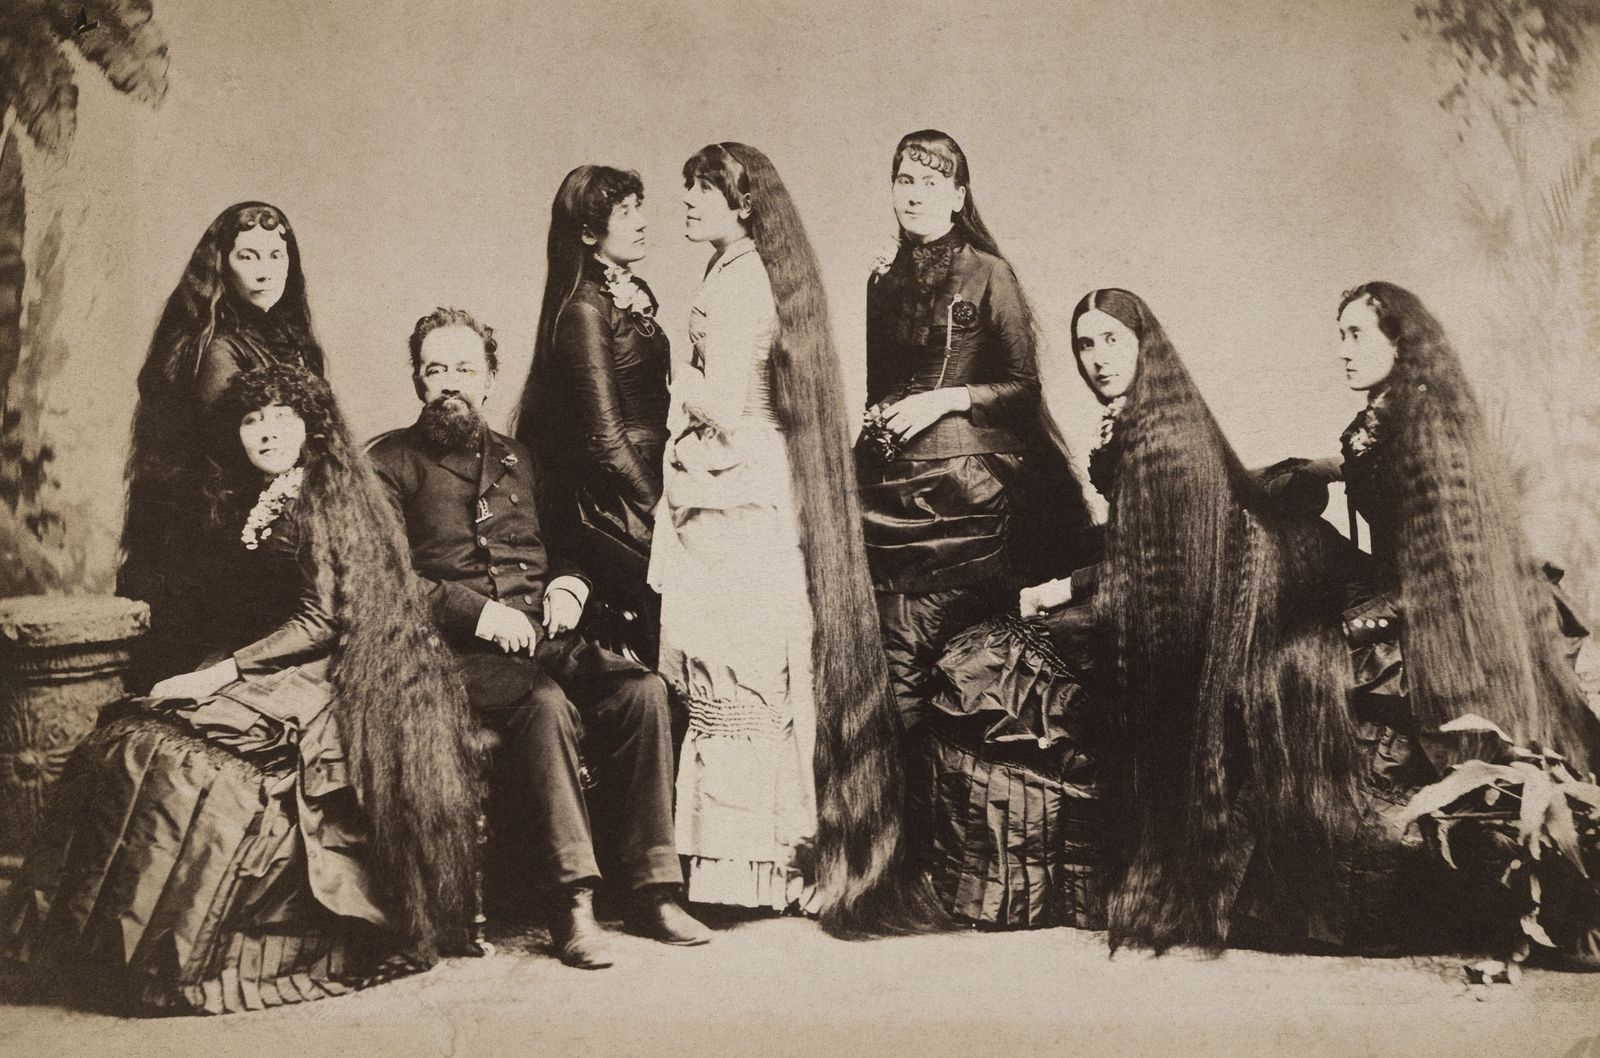 SEVEN SUTHERLAND SISTERS. The Seven Sutherland Sisters (with their father, Fletcher) of Niagara County, New York, famed for their crowning glory, the combined lengths of which was thirty-six feet, ten inches. Original cabinet photograph, c1894.